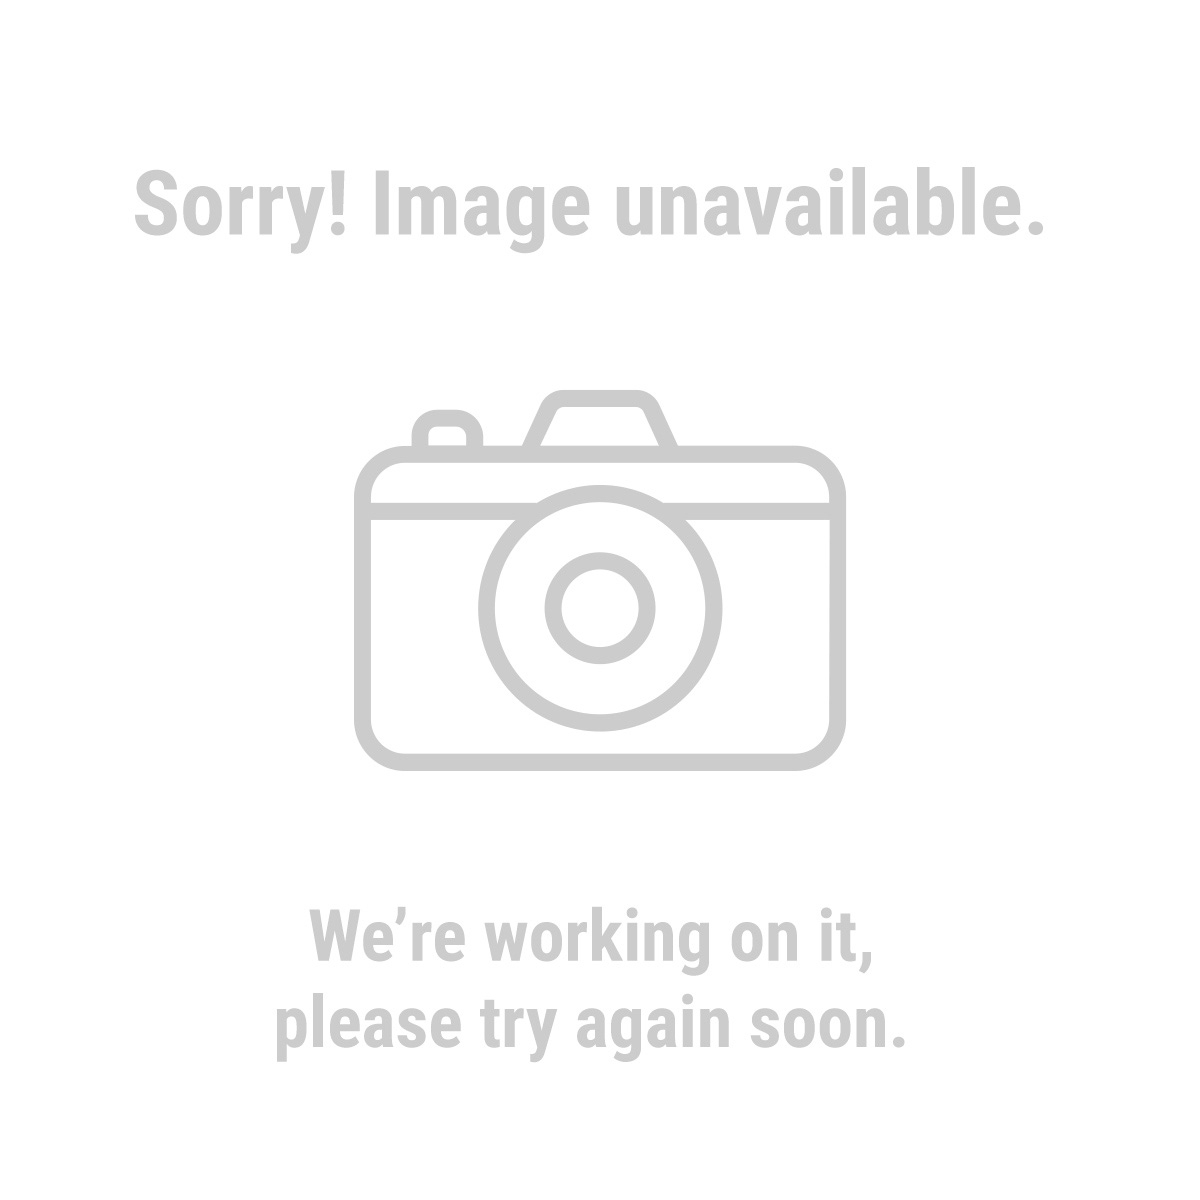 HARDY 66291 5 Pair Black and Yellow Leather Work Gloves